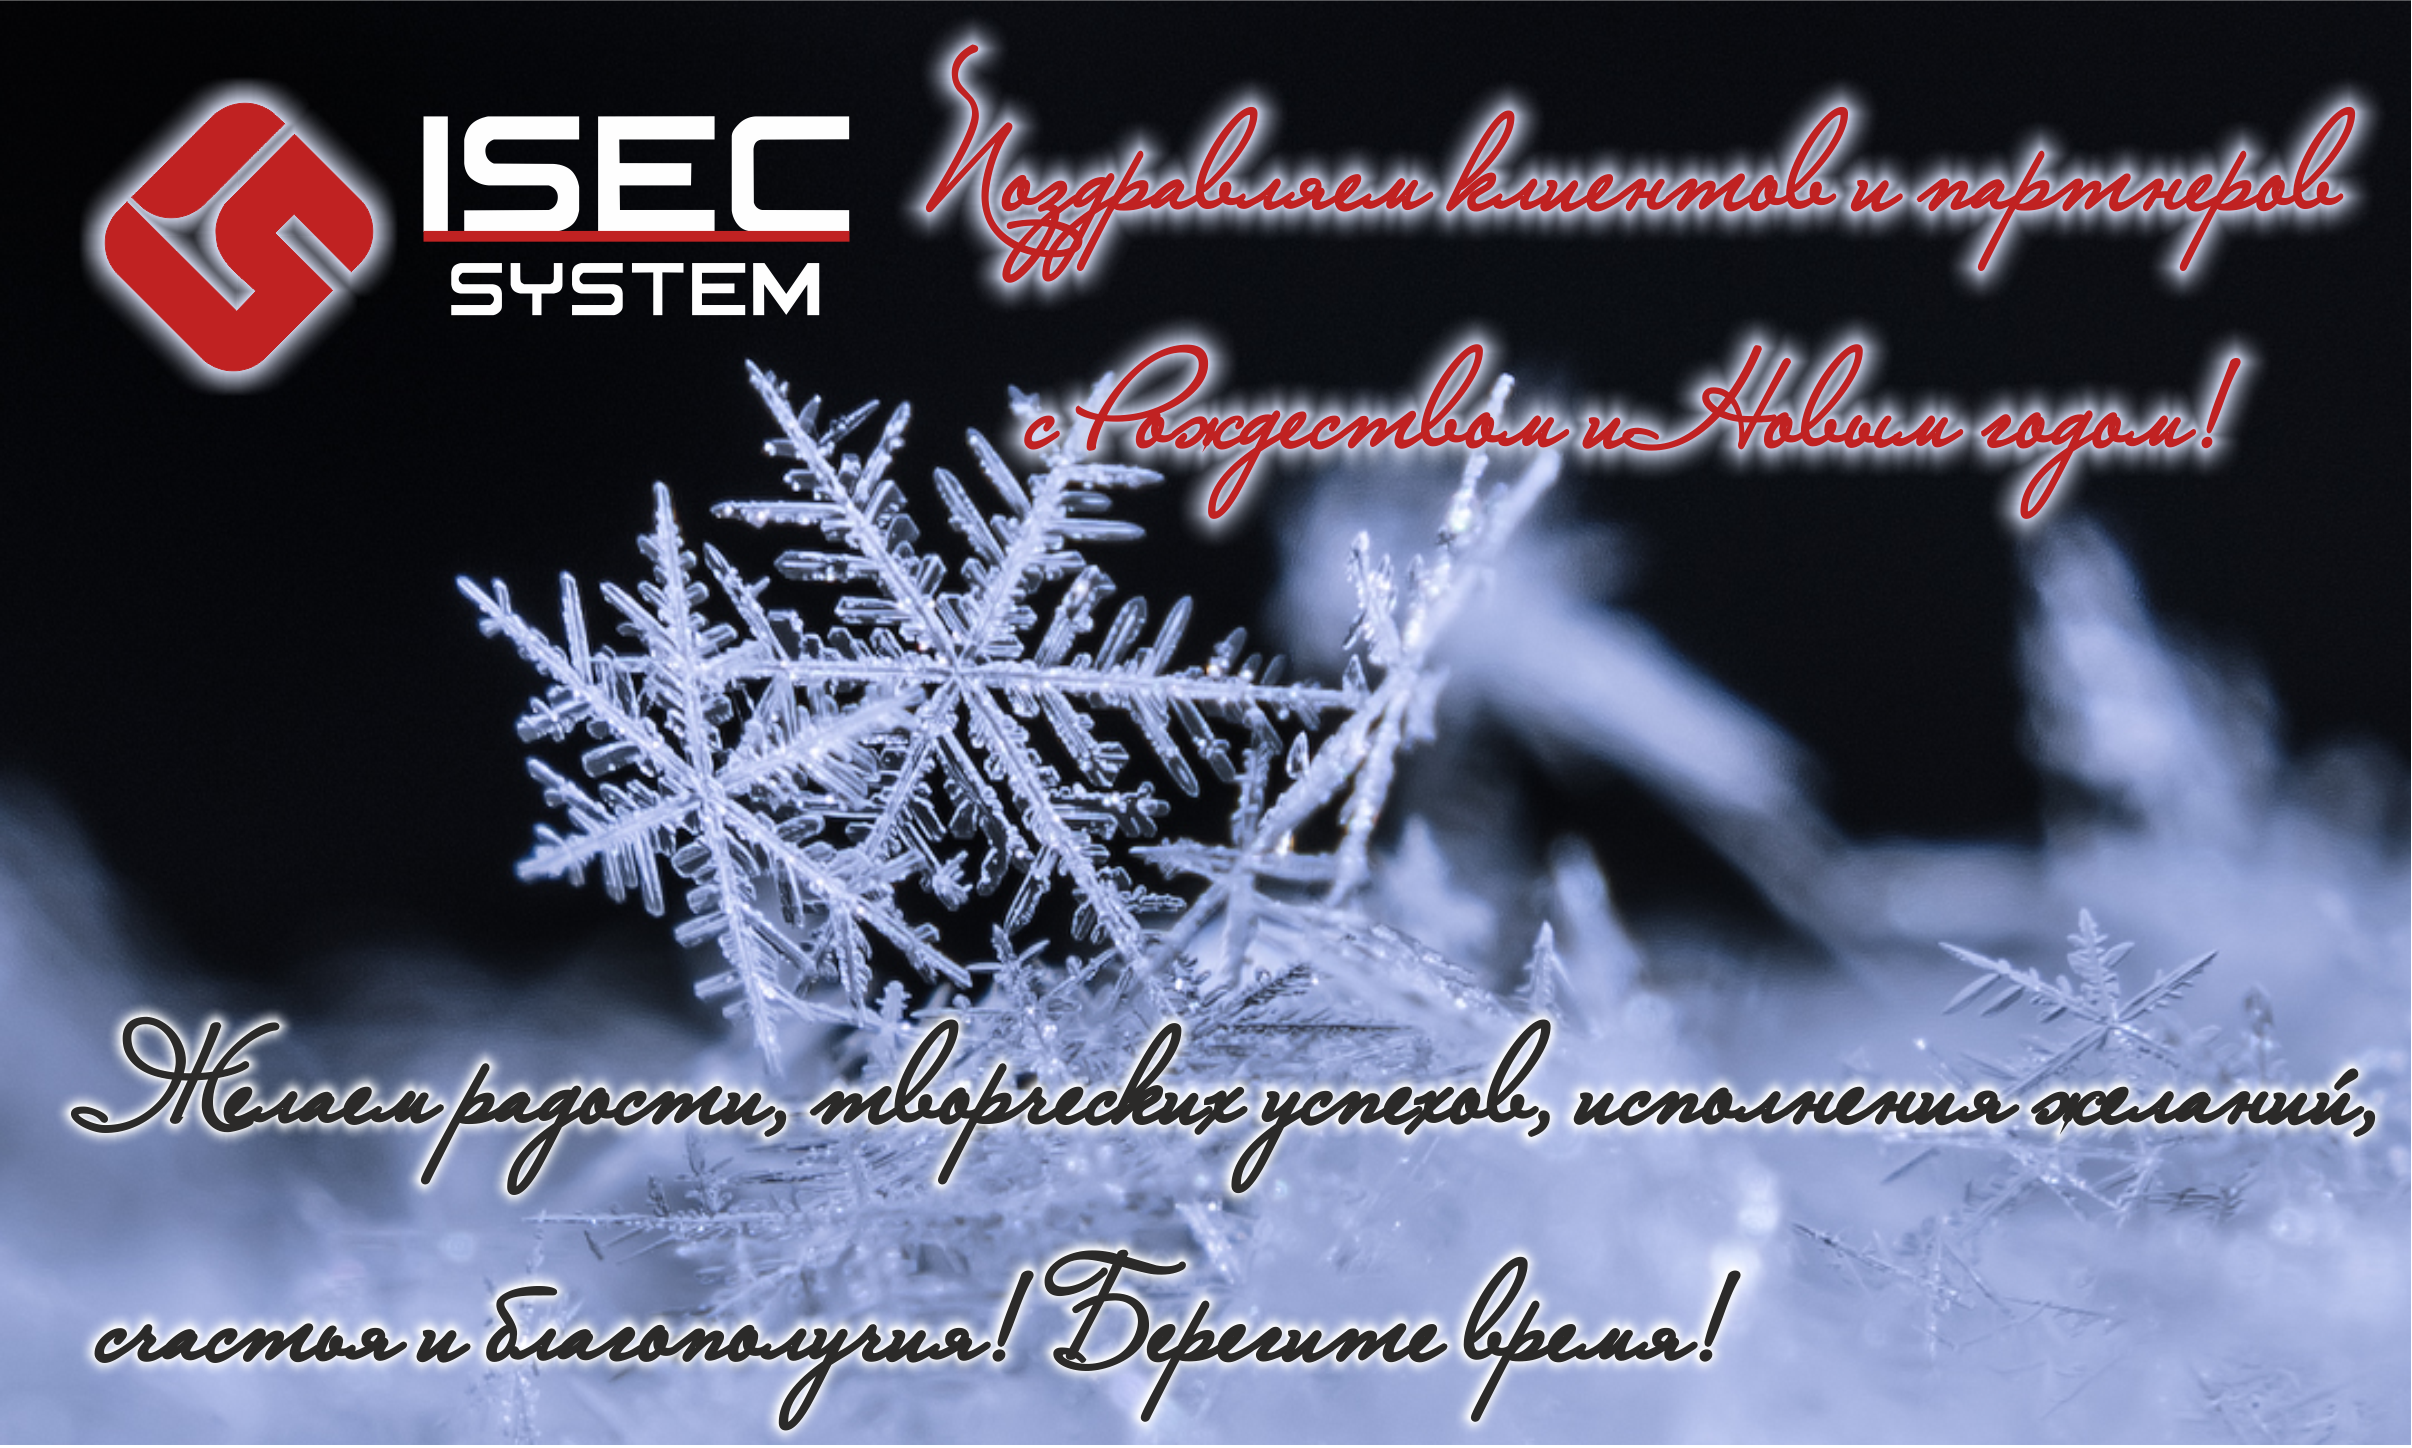 http://isec-system.by/wp-content/uploads/2016/12/NY_16-17.png